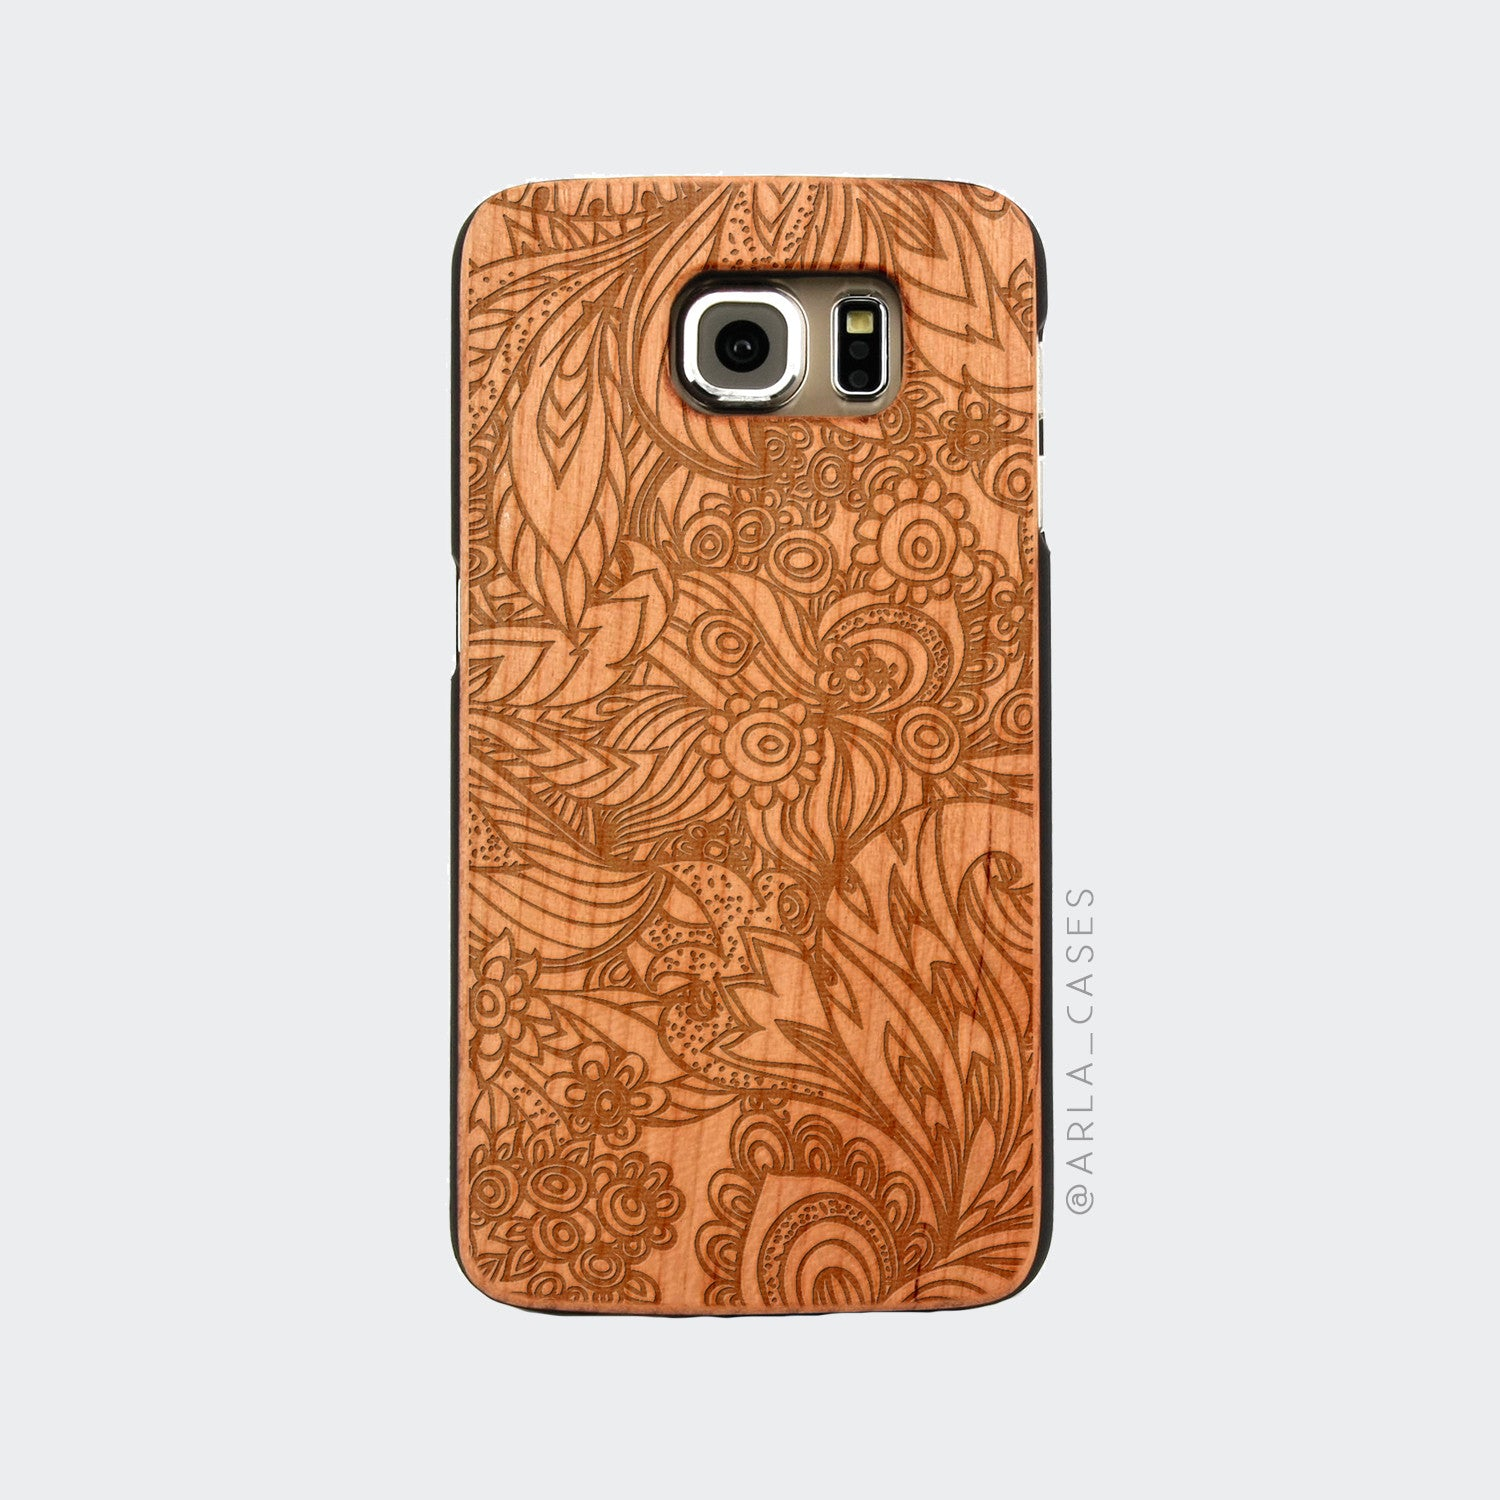 Floral Doodle Engraved on Wood Galaxy Case